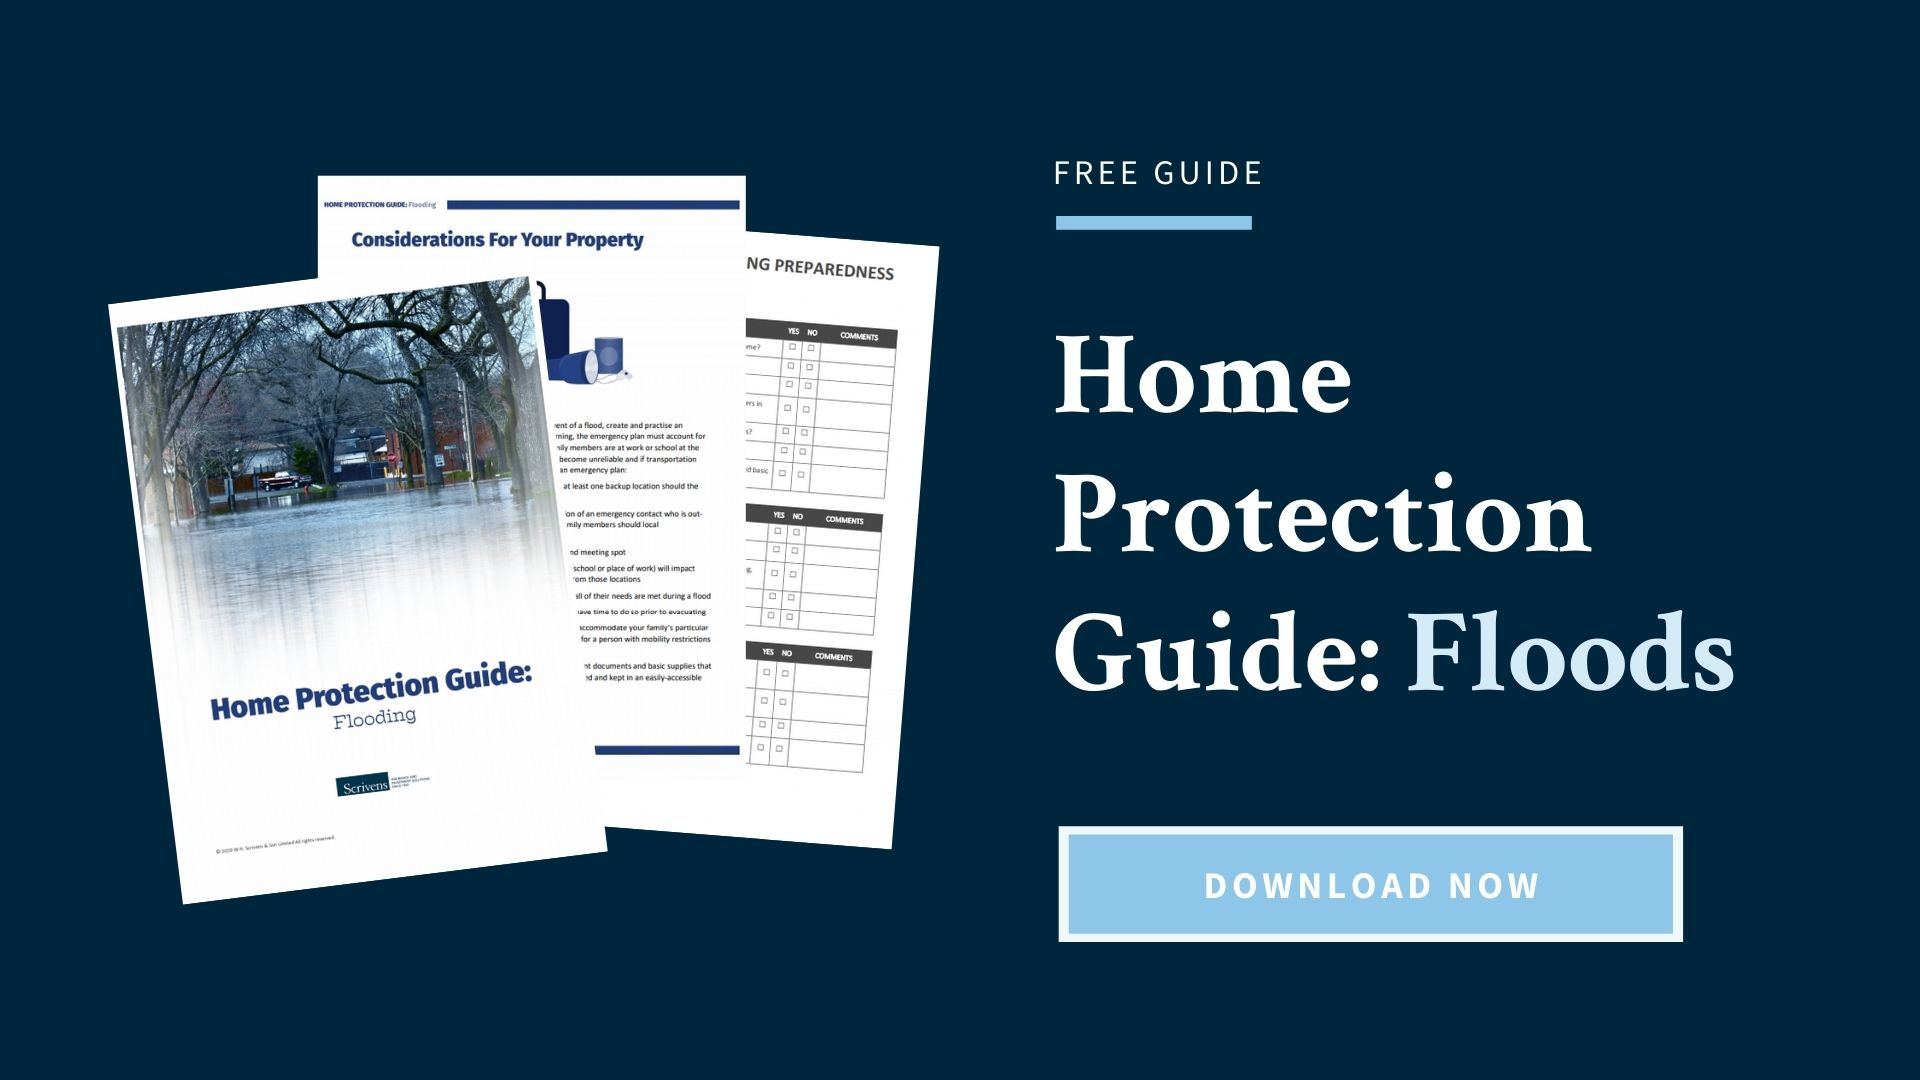 Home Protection Guide: Floods [Free Download] (opens in a new tab)